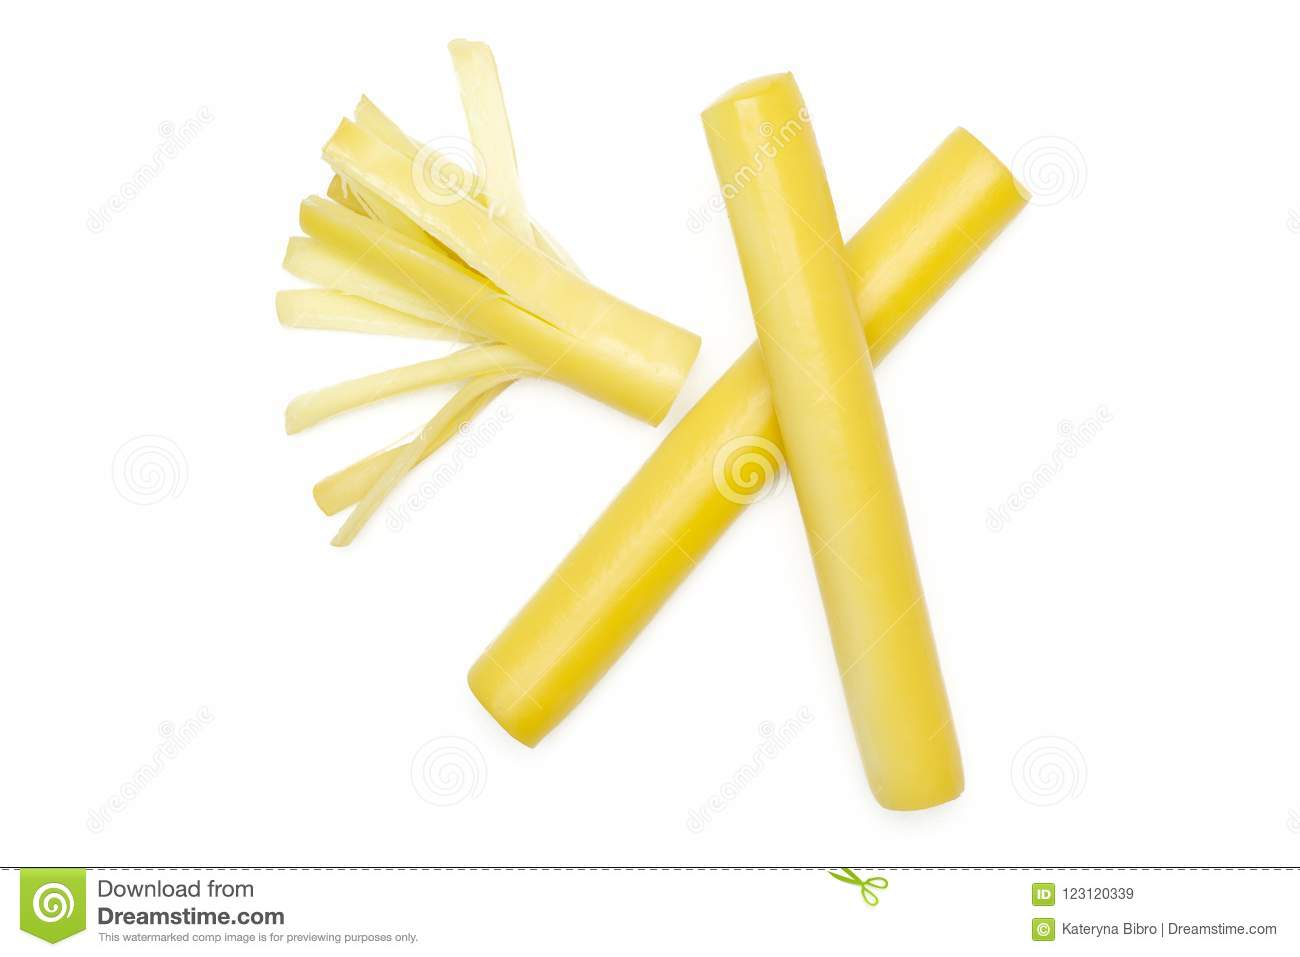 Smoked slovak string cheese stick isolated on white